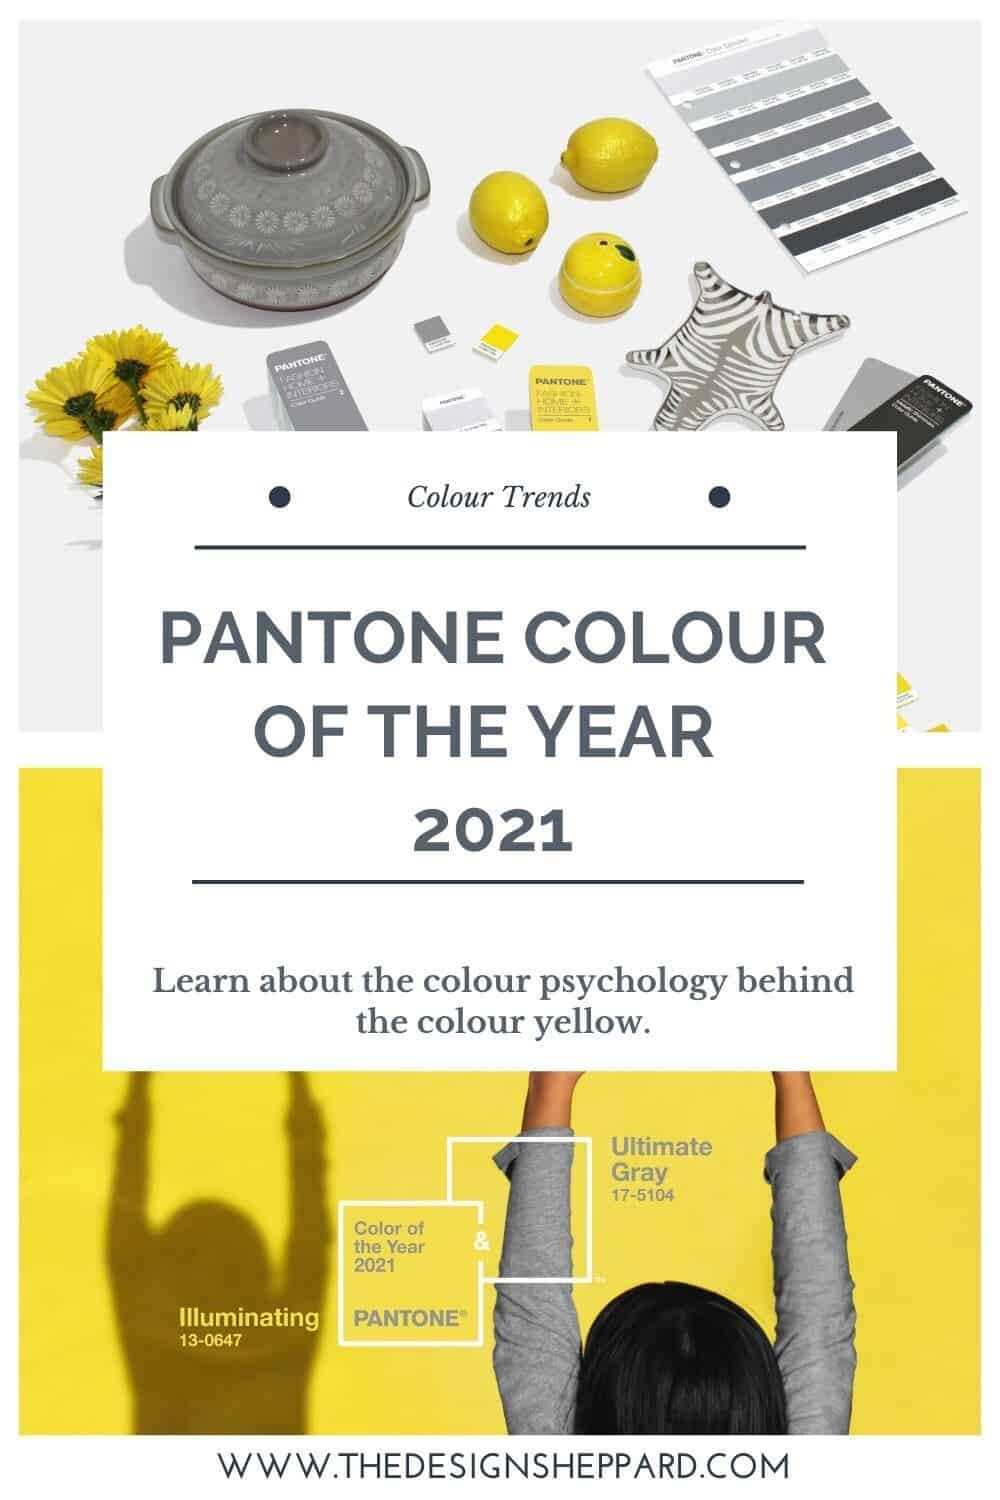 Pantone Colour of the Year 2021 - Illuminating. The colour psychology behind using yellow in interiors.